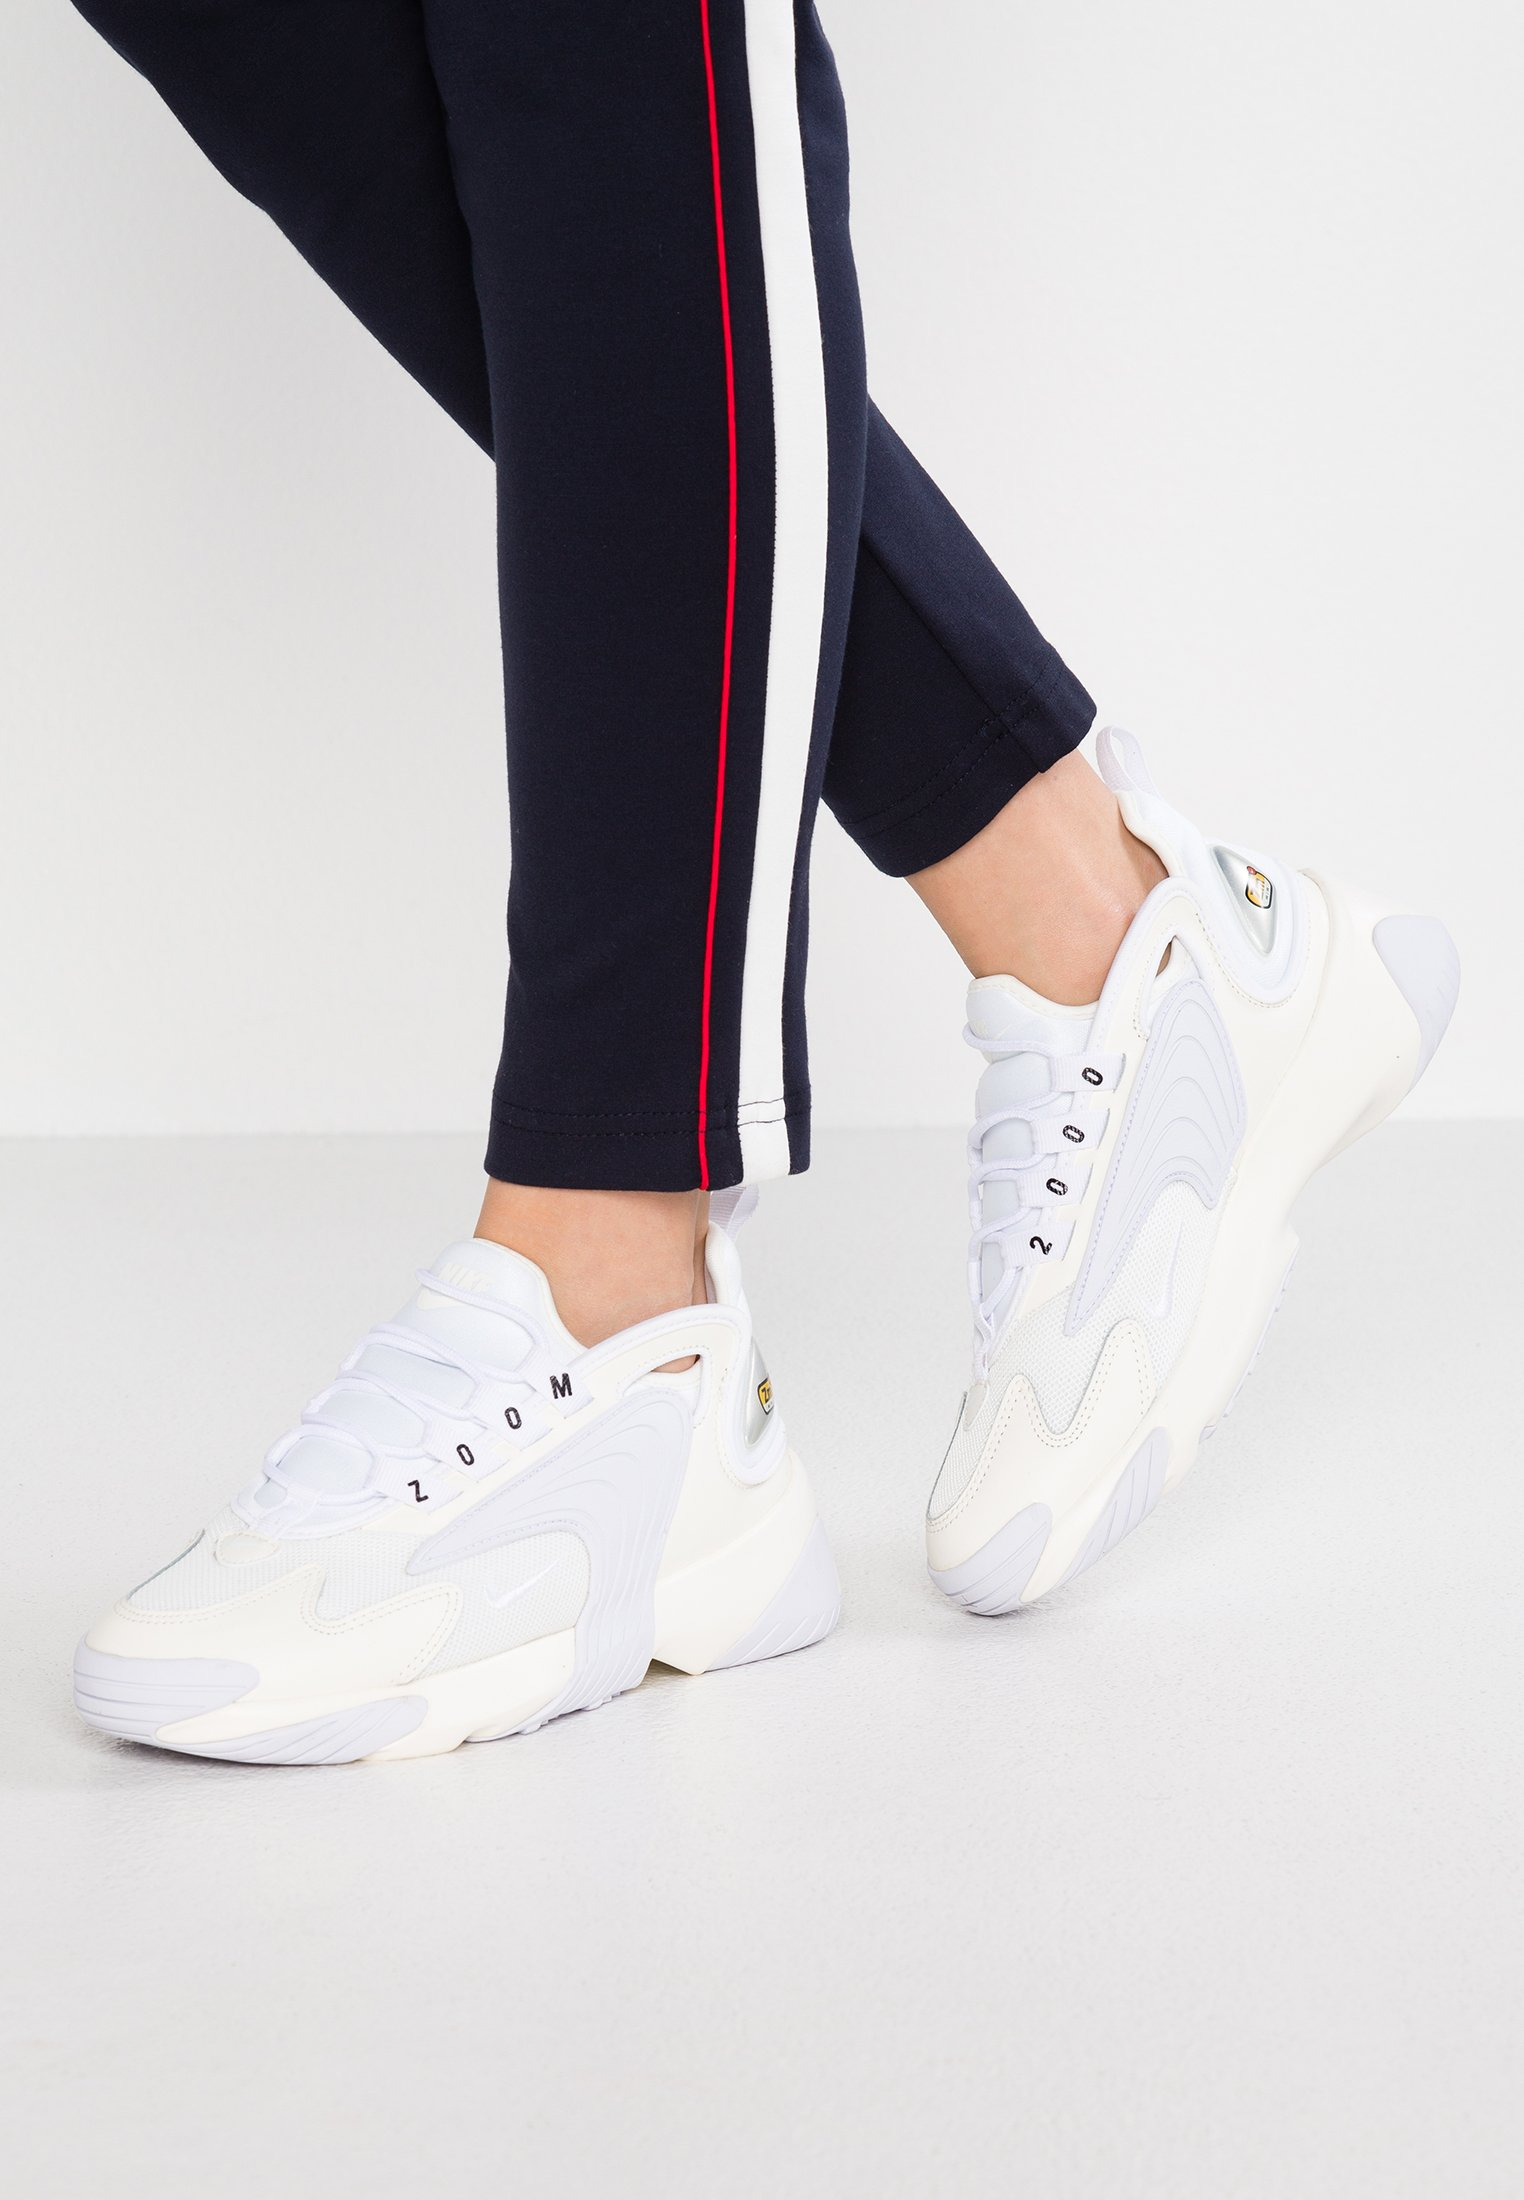 ZOOM 2K Sneakers sailwhiteblack